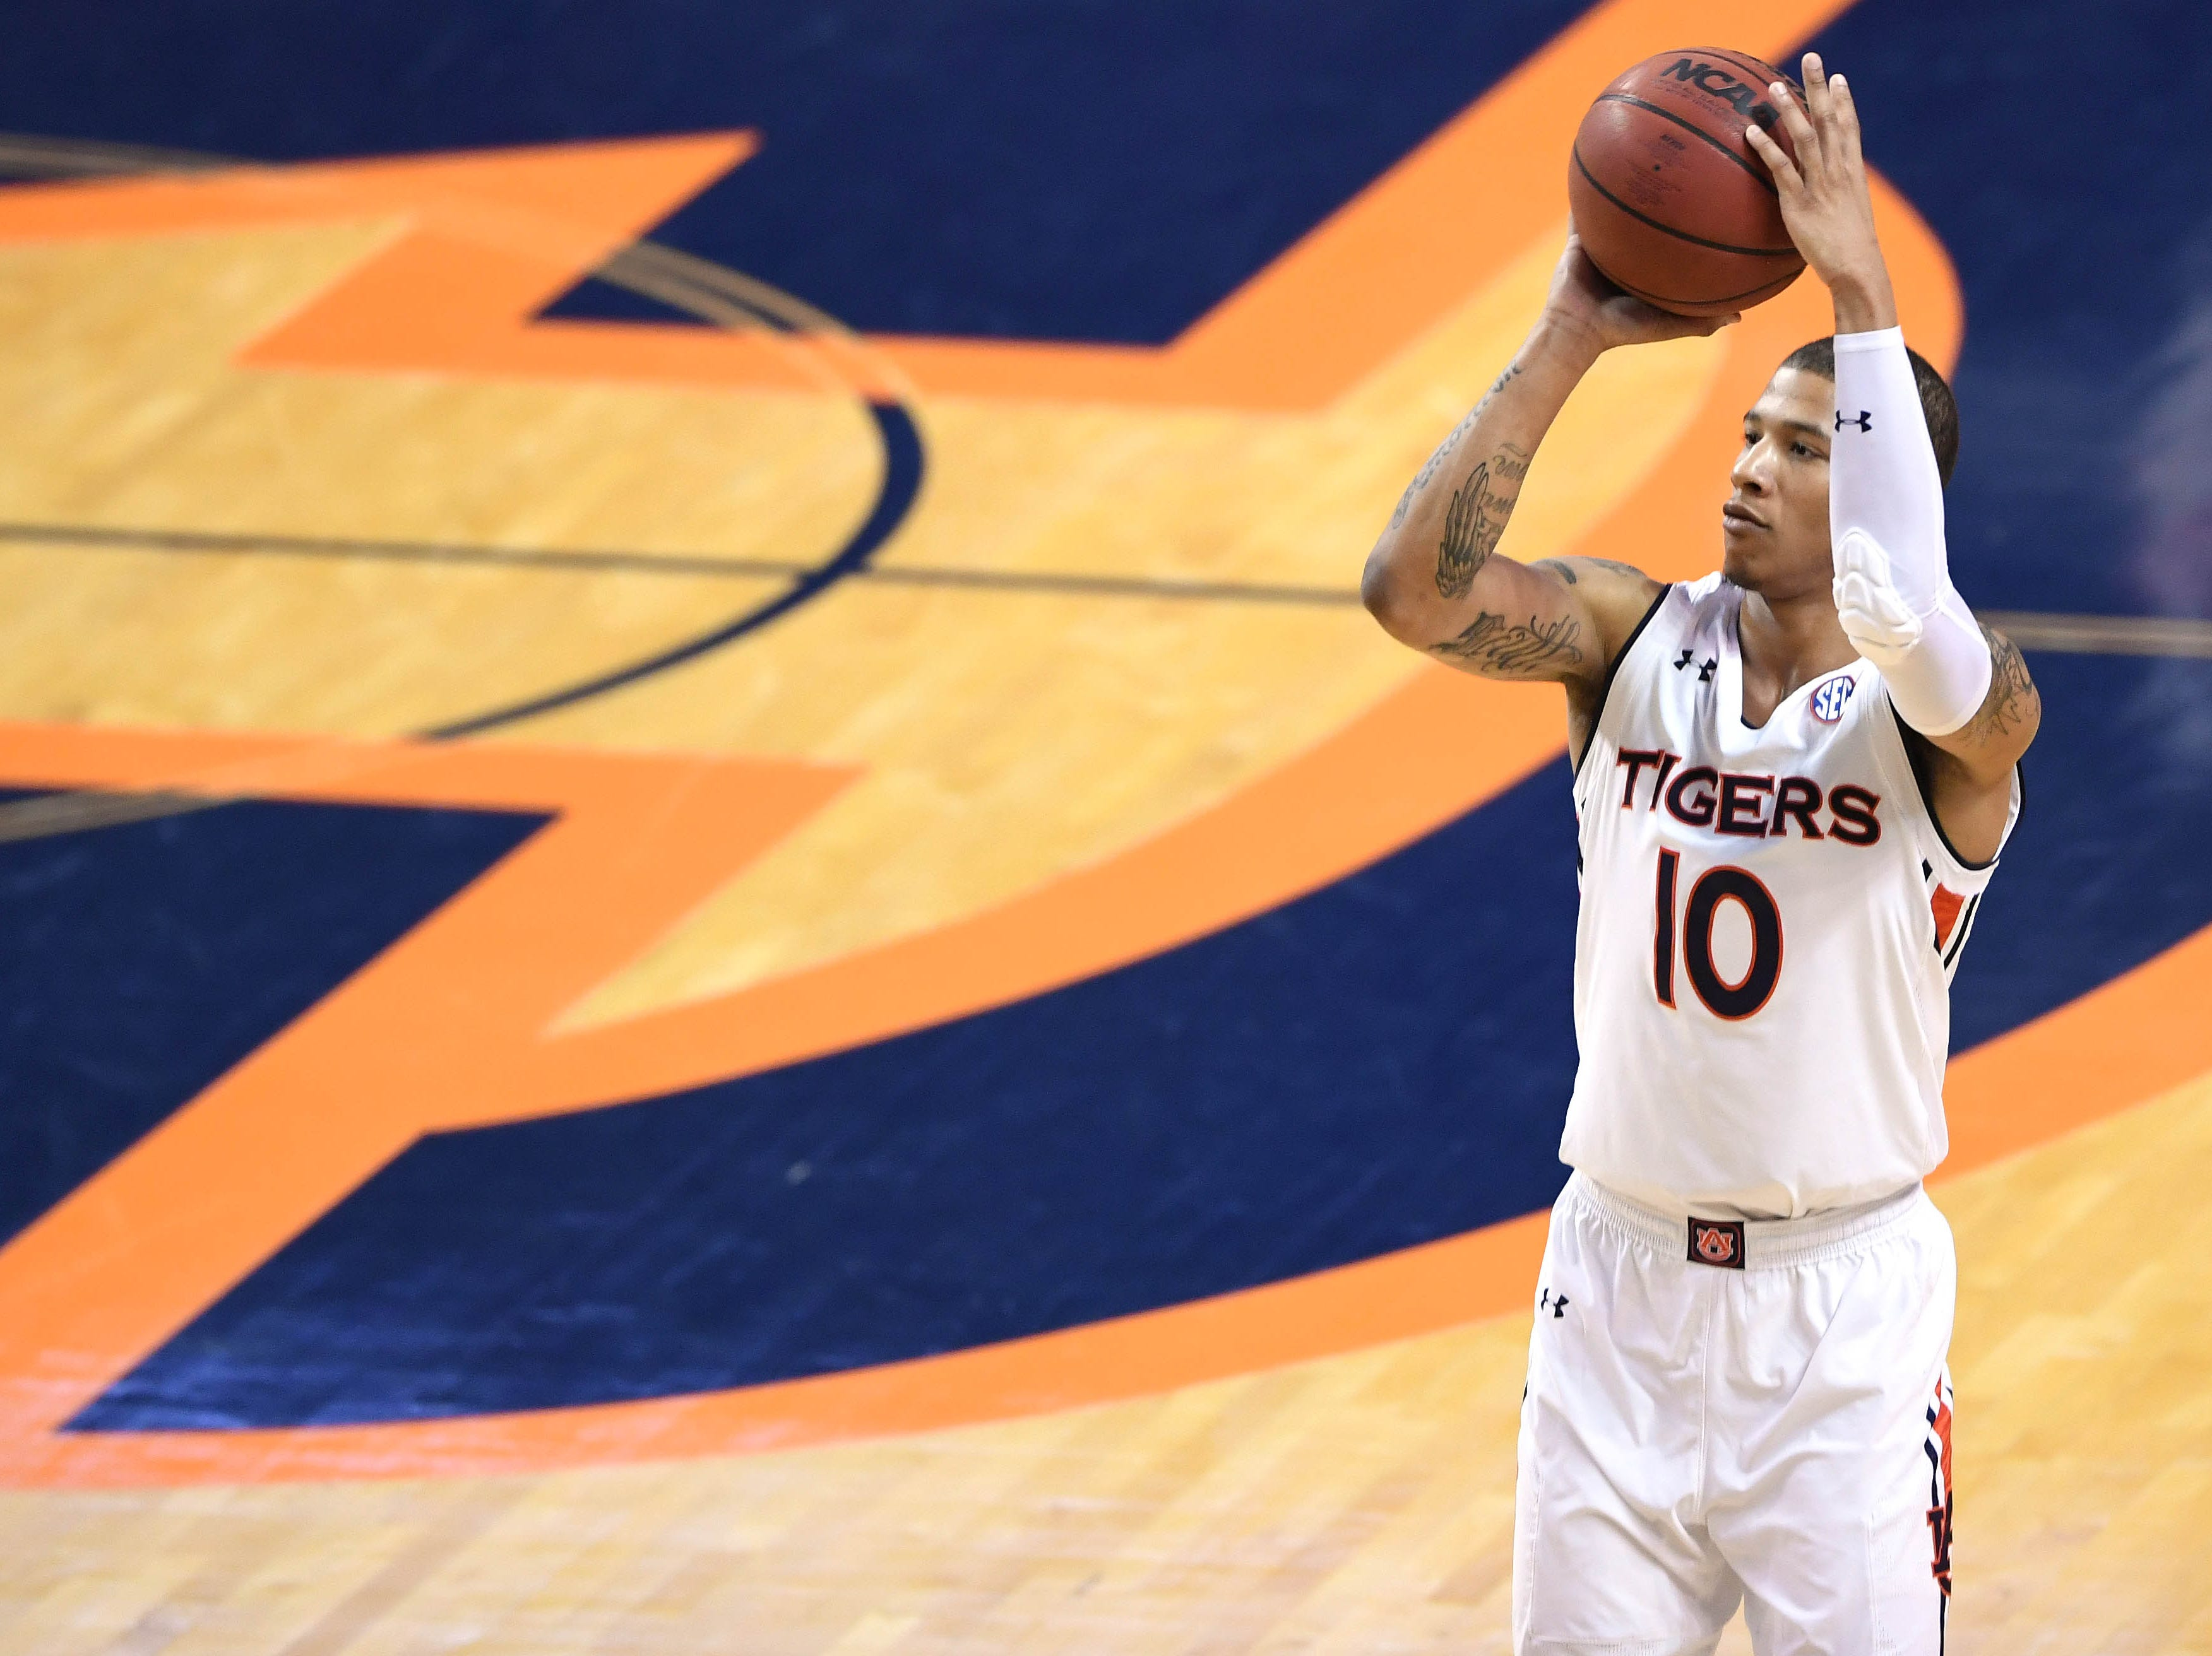 Auburn guard Samir Doughty (10) shoots during the second half against Murray State Auburn Arena on Dec. 22, 2018.